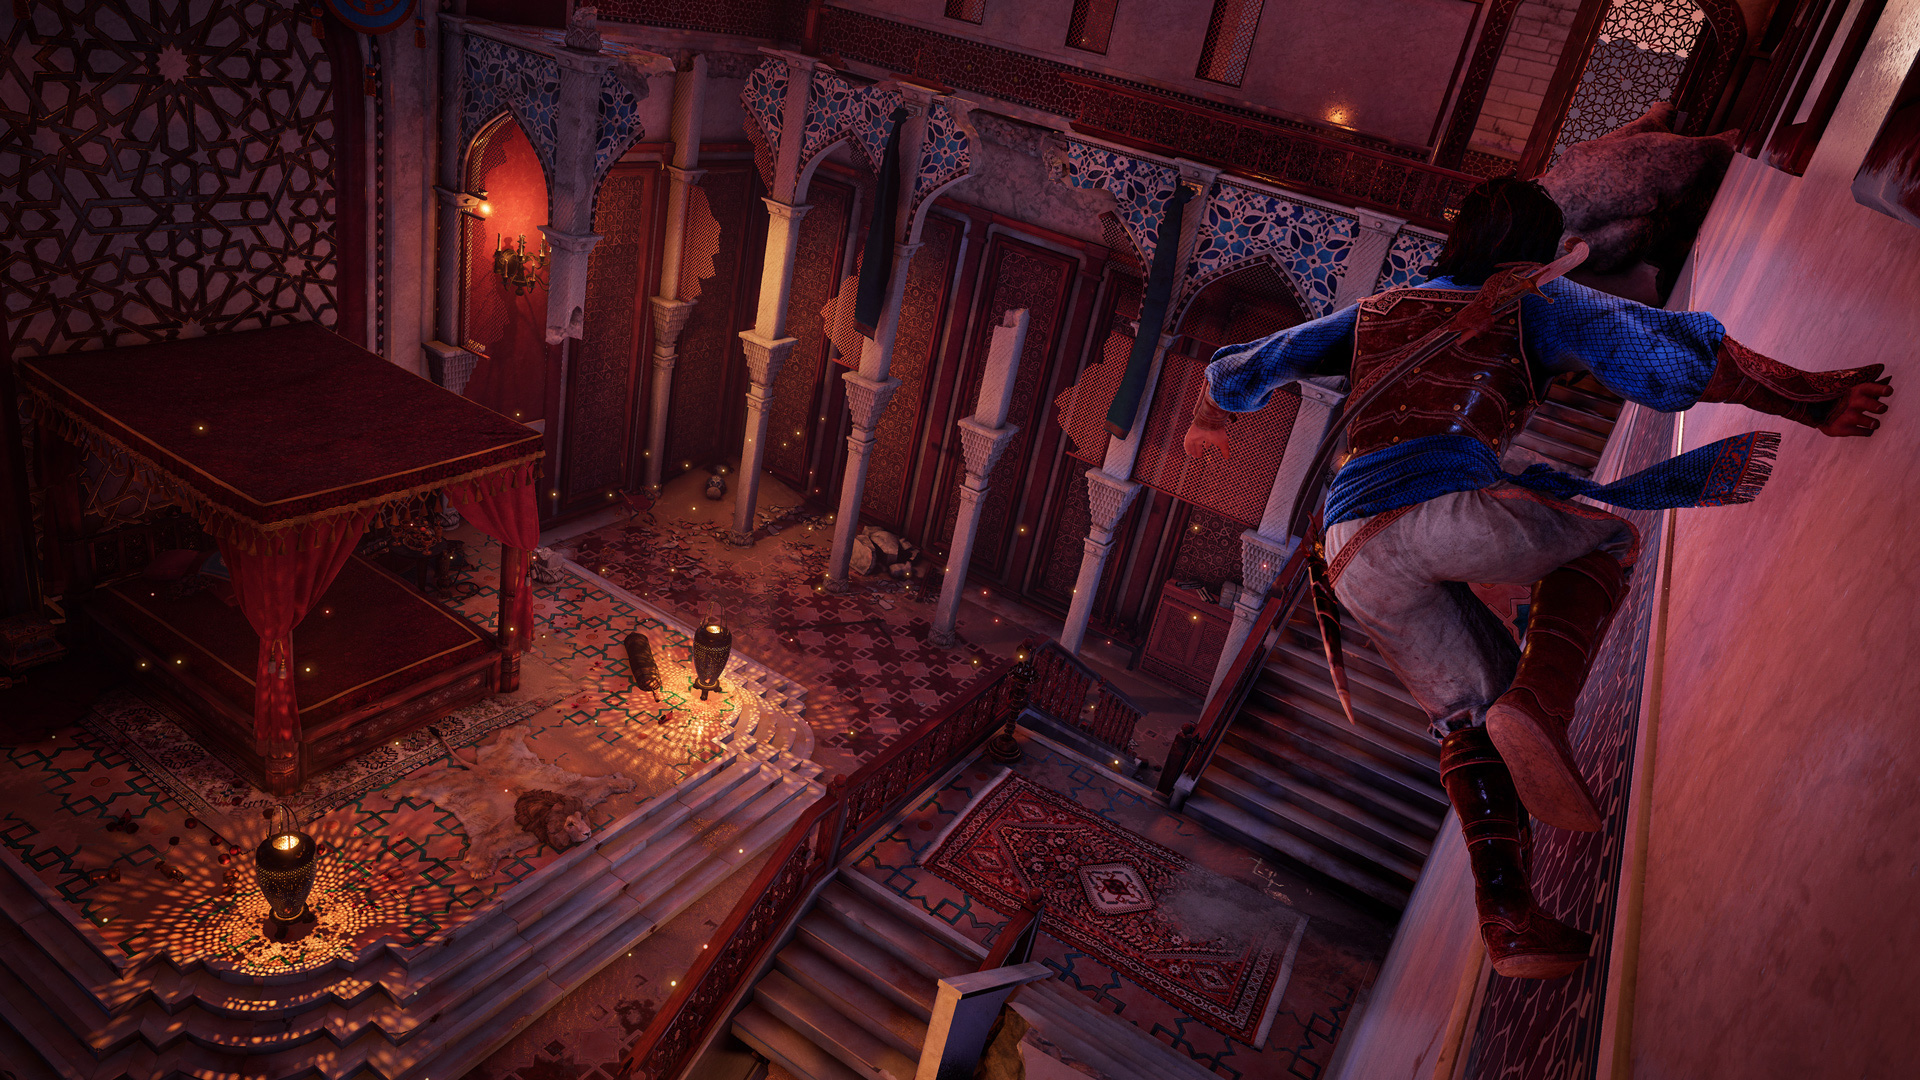 Prince of Persia: The Sands of Time Remake no longer has a release date screenshot